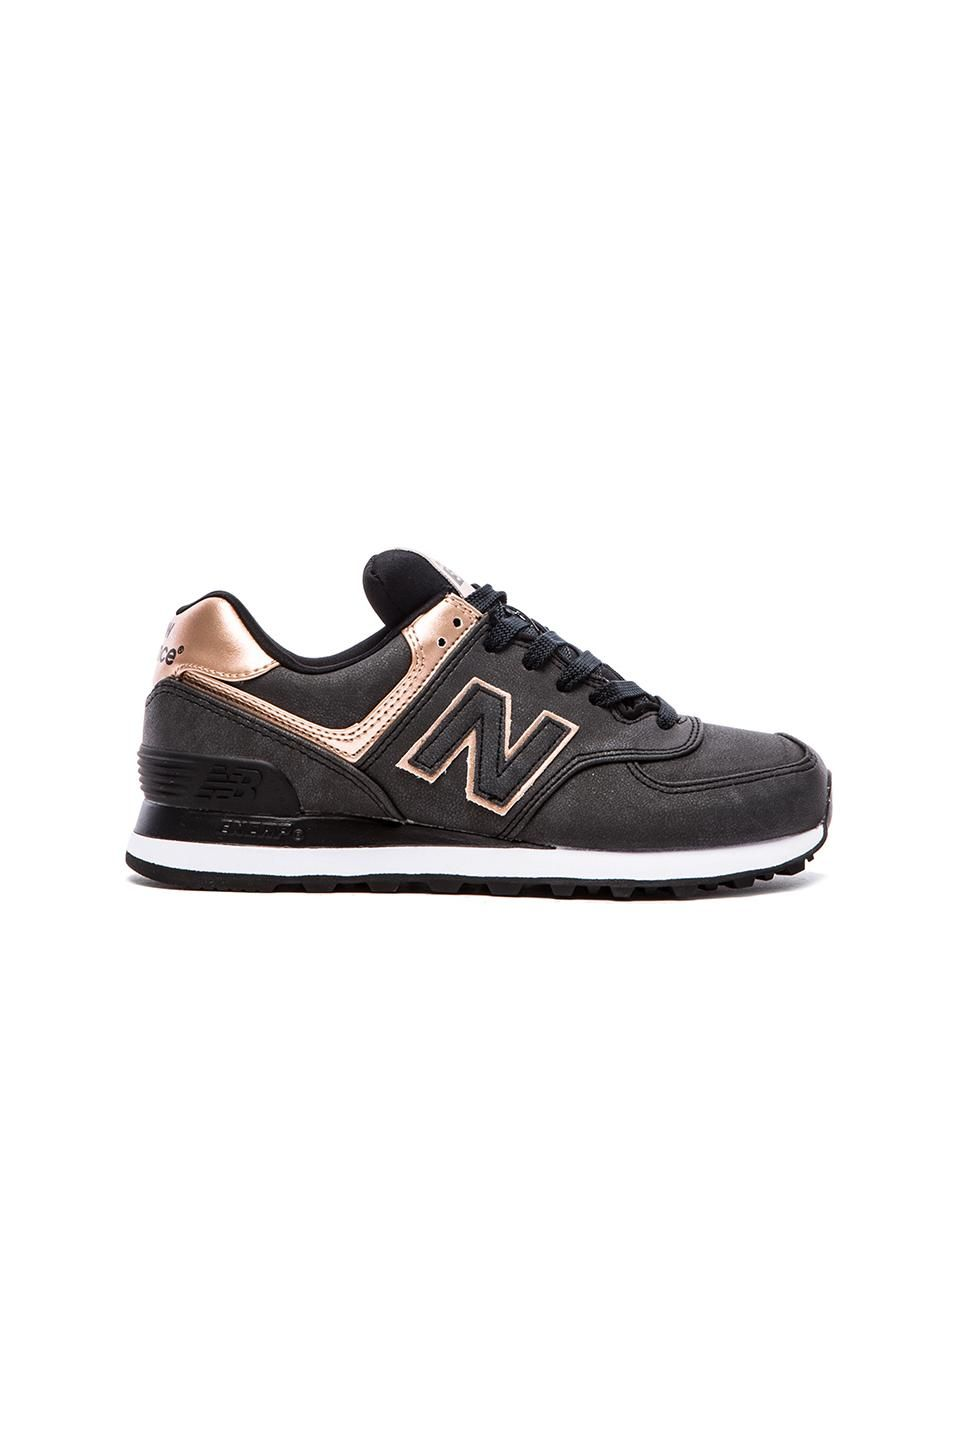 new balance 574 baskets effet m閠allis?bronze